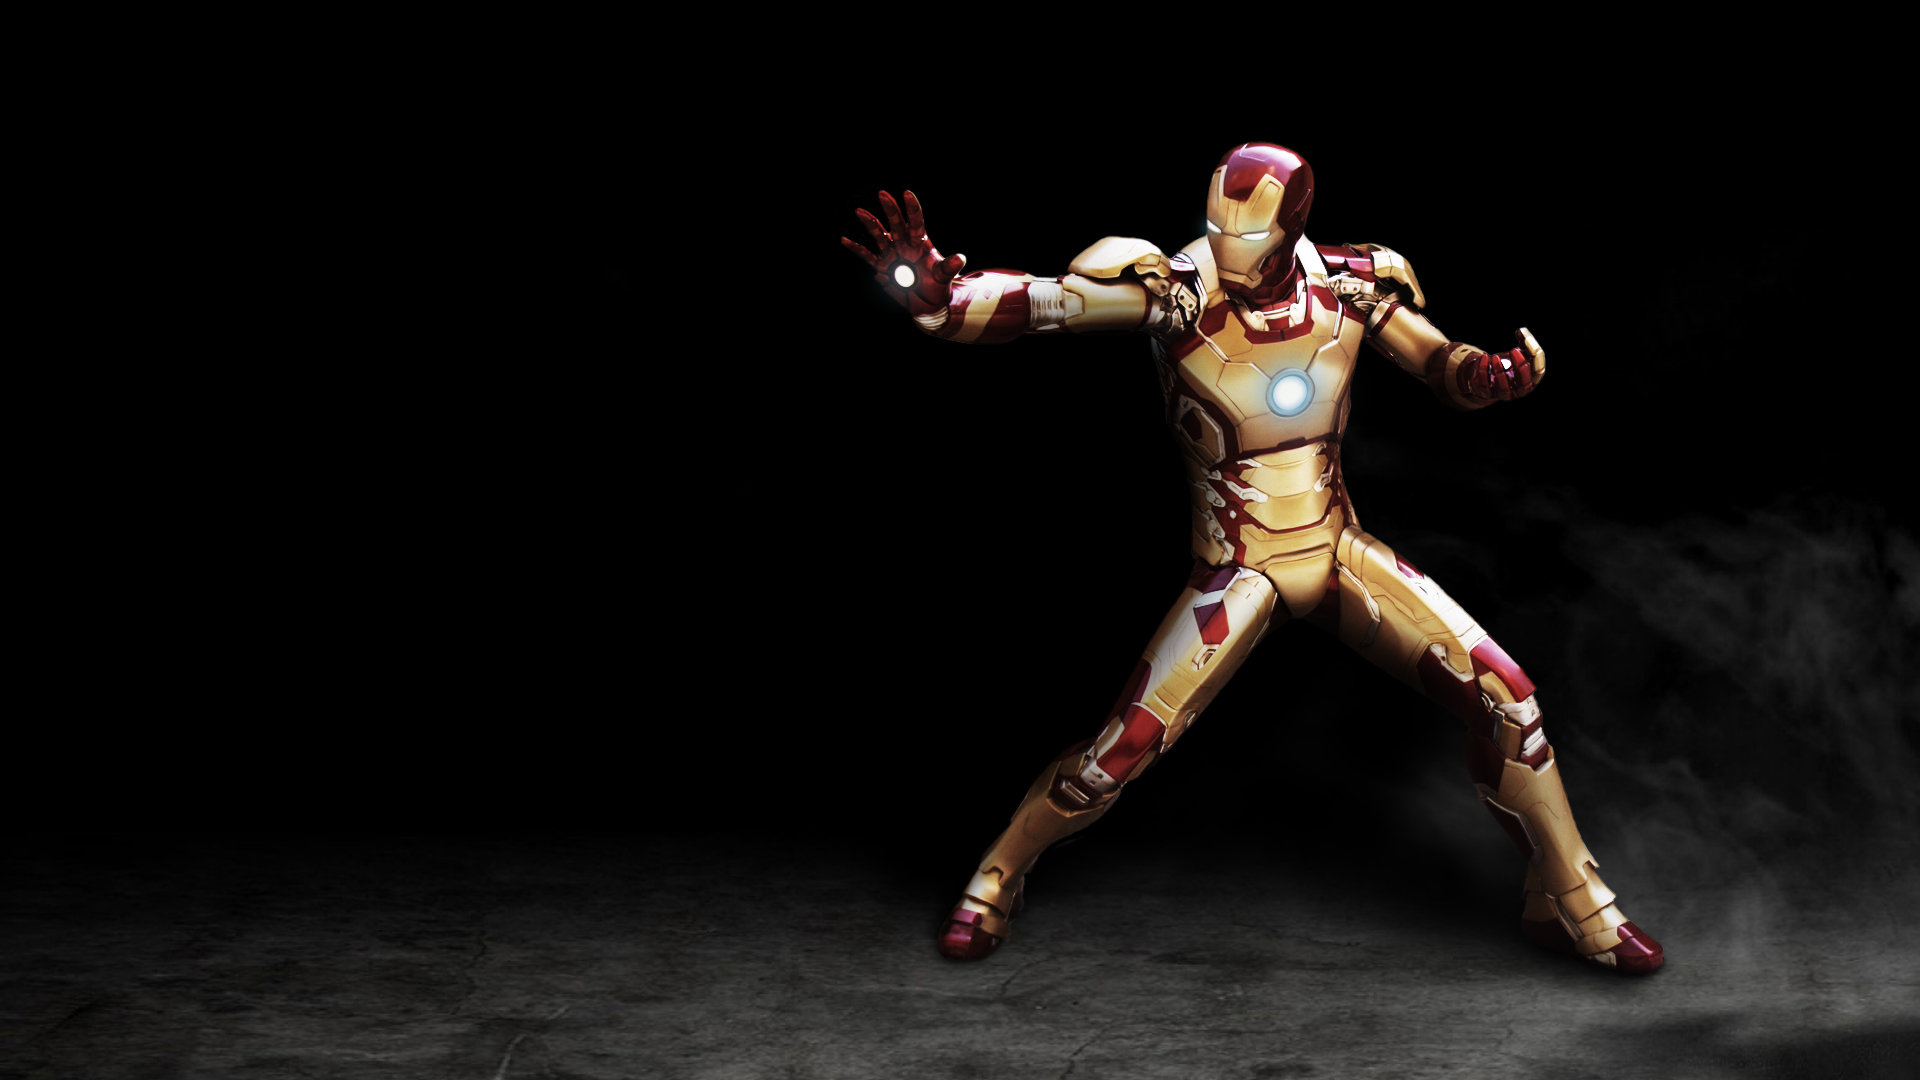 cool iron man wallpaper best is high definition wallpaper you 1920x1080